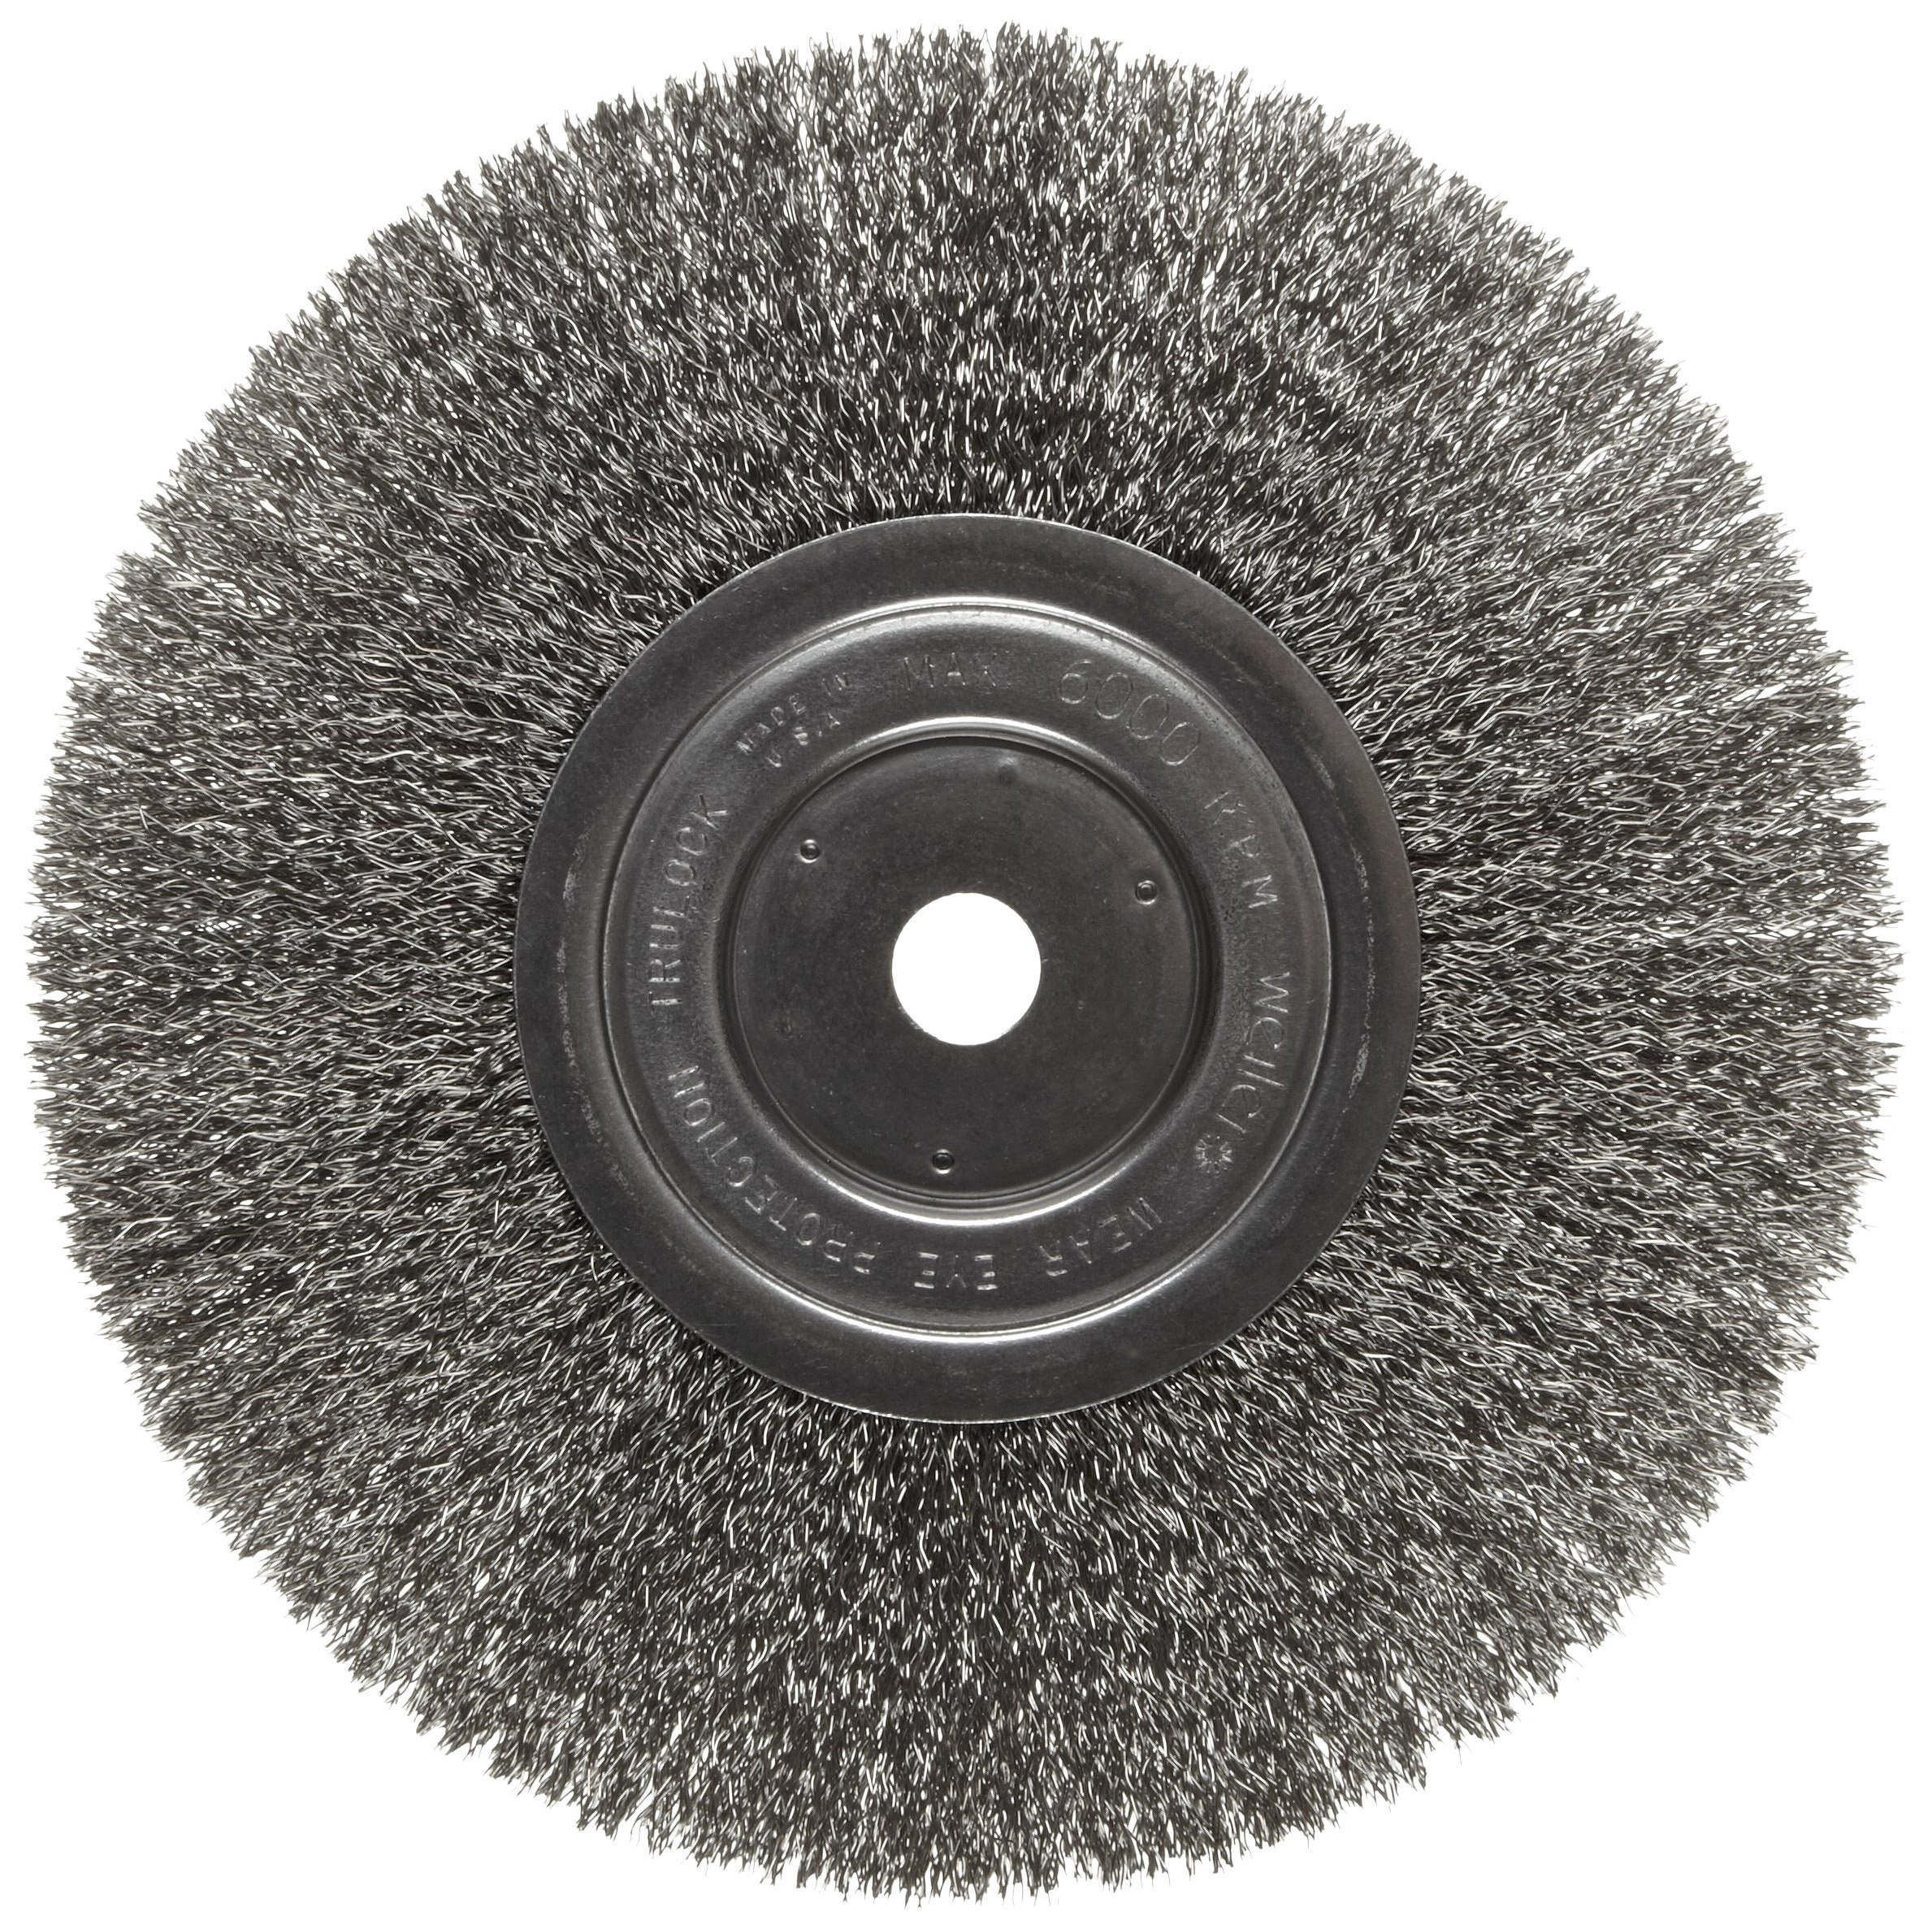 Weiler Trulock Narrow Face Wire Wheel Brush, Round Hole, Stainless Steel 302, Crimped Wire, 8'' Diameter, 0.0118'' Wire Diameter, 5/8'' Arbor, 2-1/16'' Bristle Length, 3/4'' Brush Face Width, 6000 rpm by Weiler